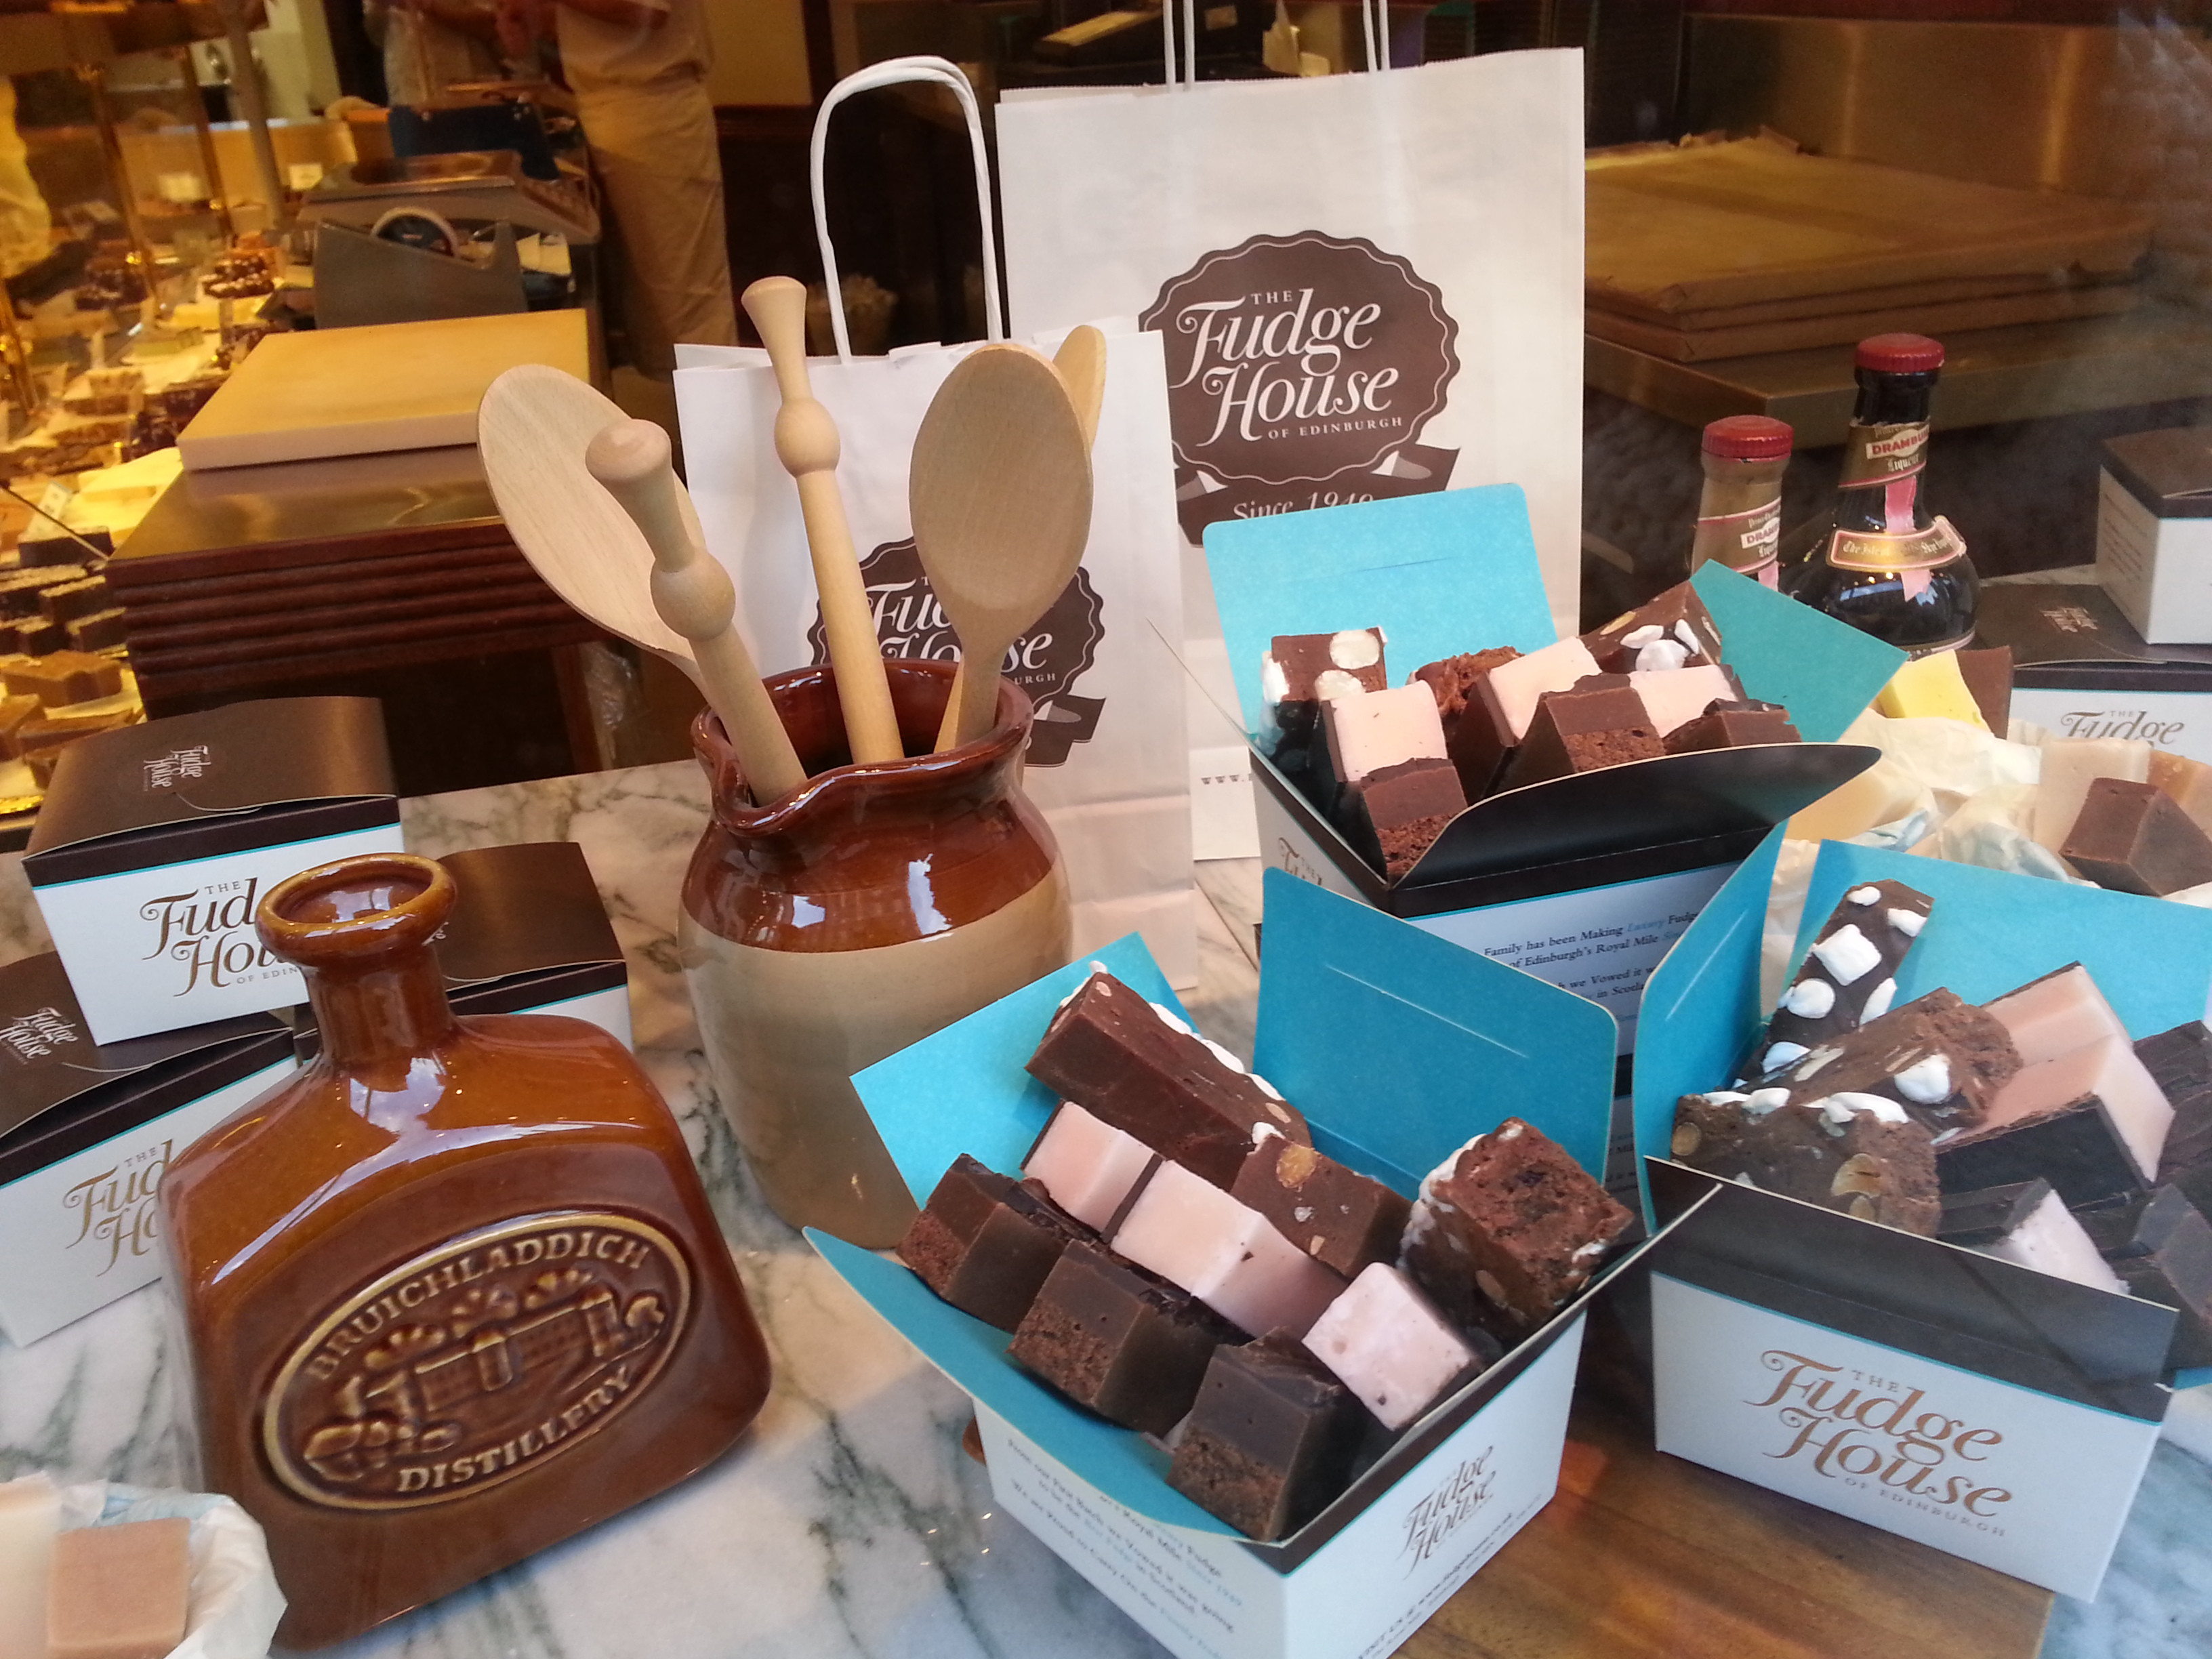 SHOP: FUDGE HOUSE